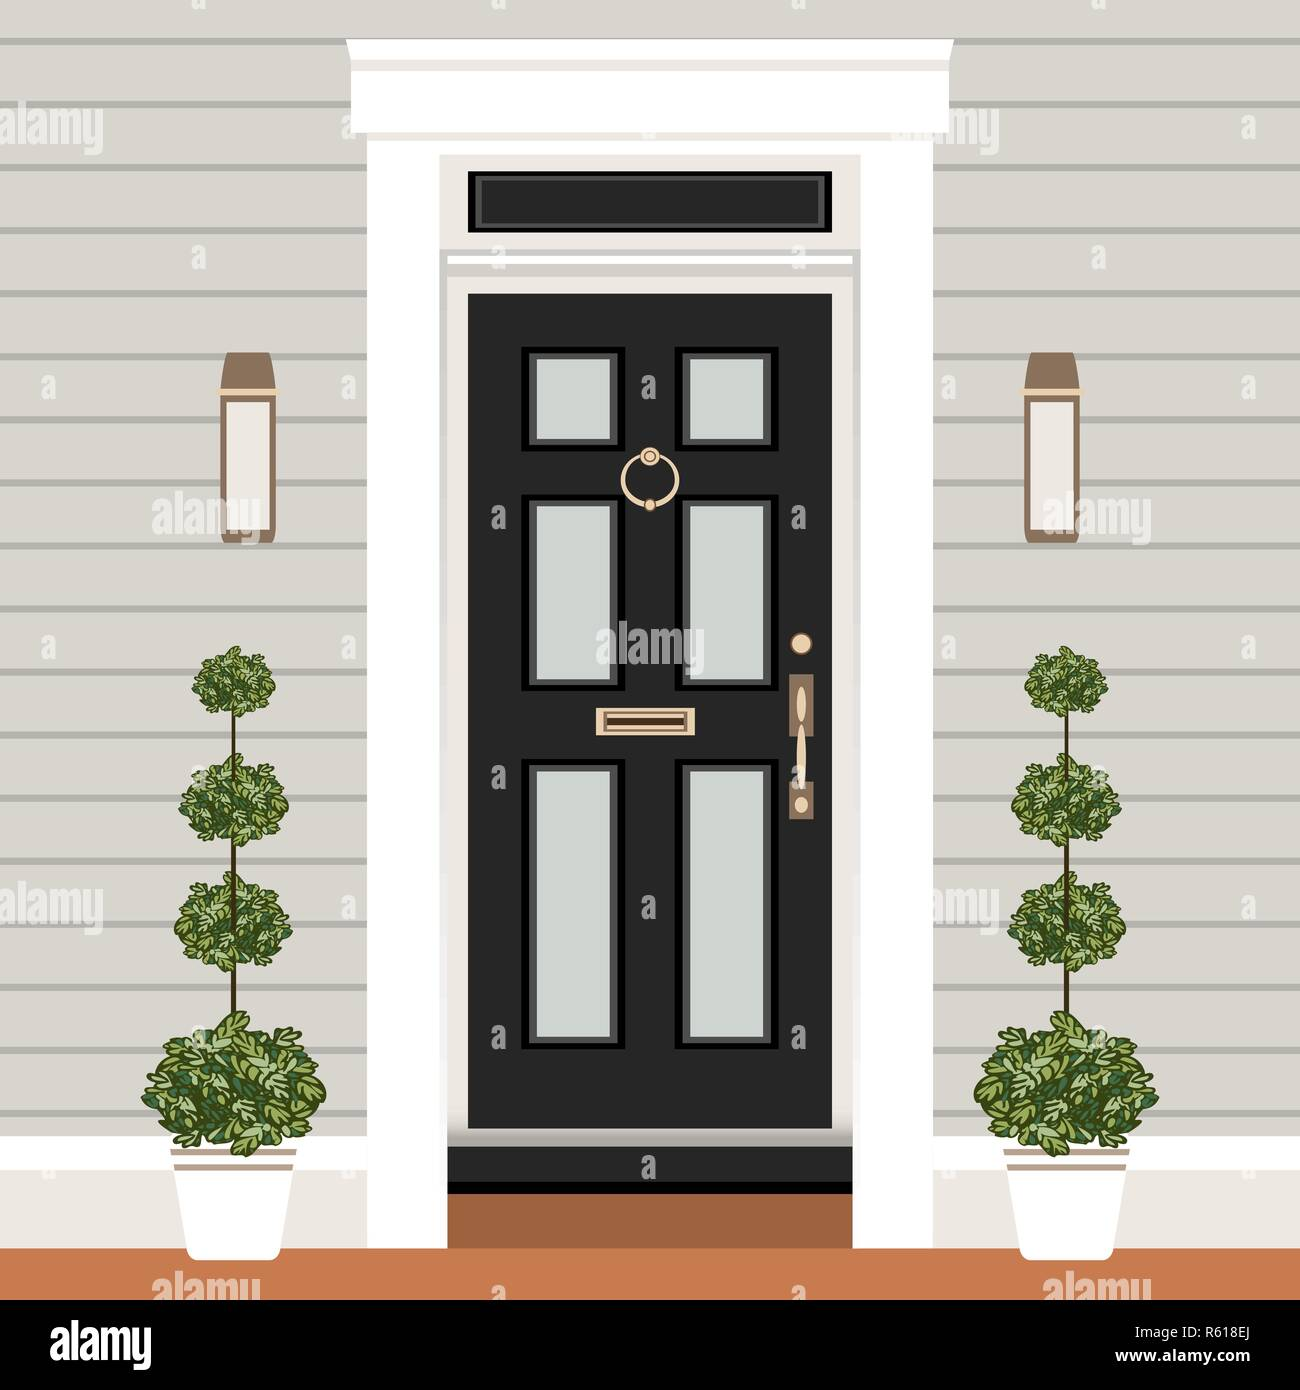 House Door Front With Doorstep And Lamps, Flowers, Entry Facade Building, Exterior  Entrance Design Illustration Vector In Flat Style